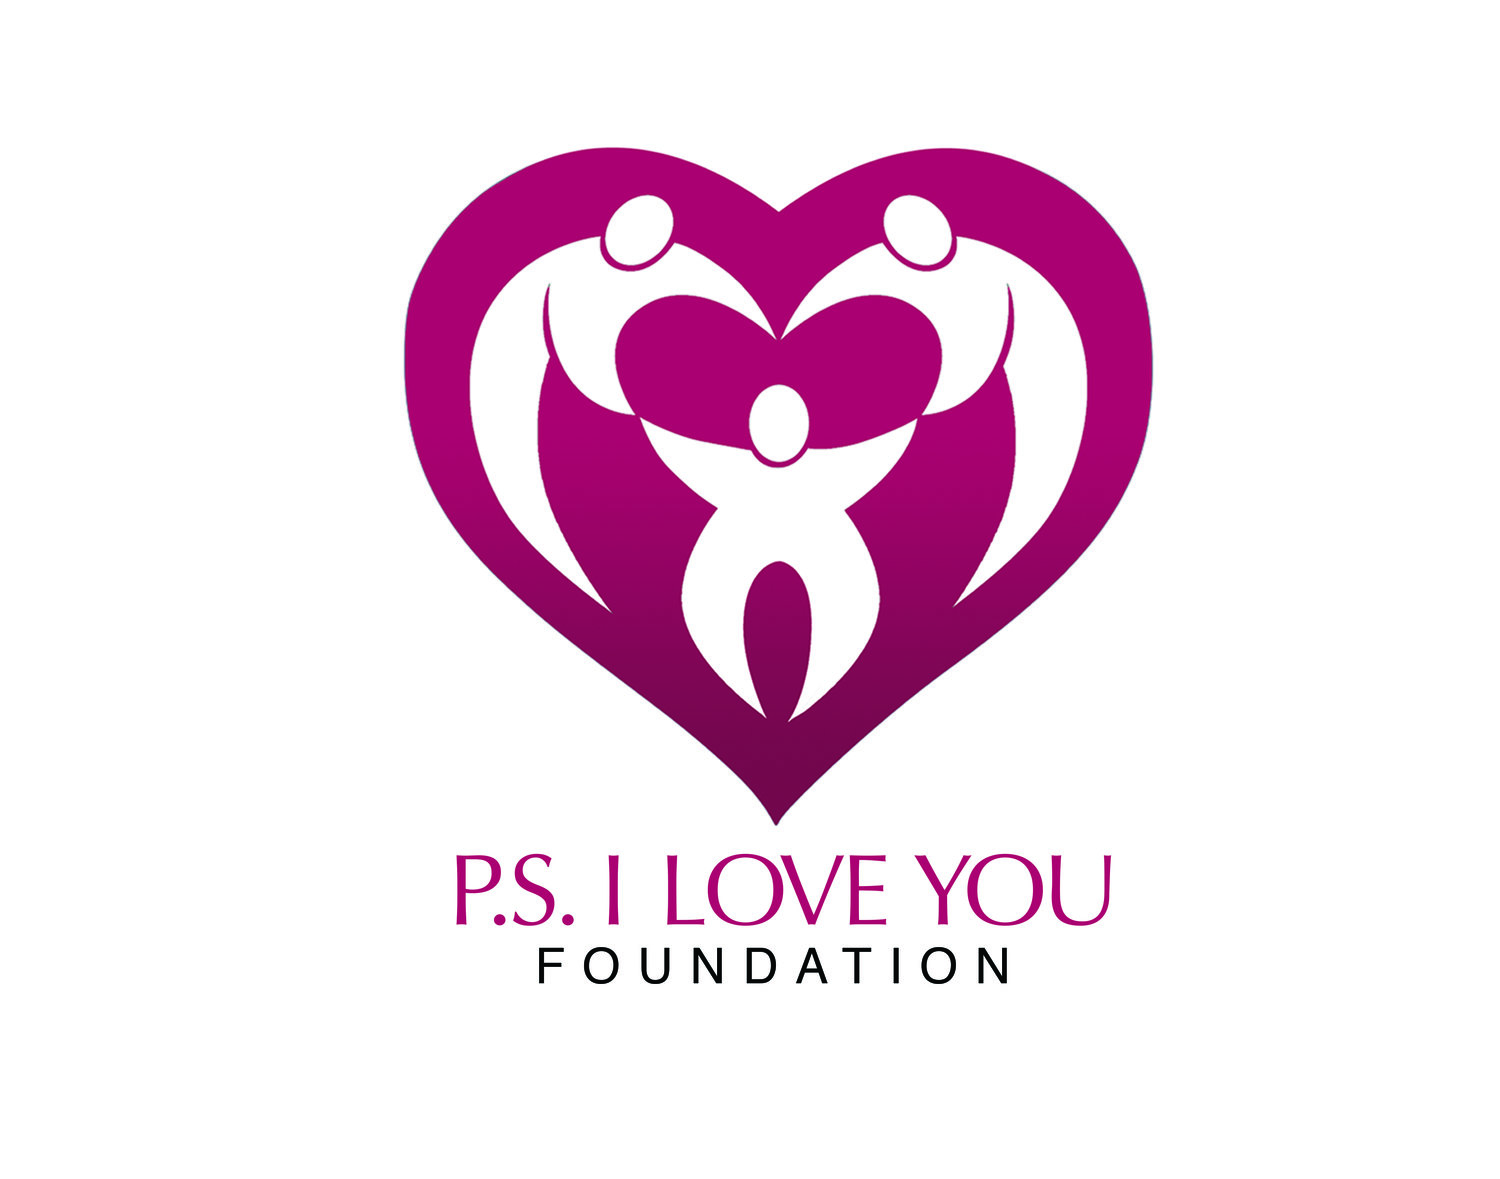 P.S. I Love You Foundation